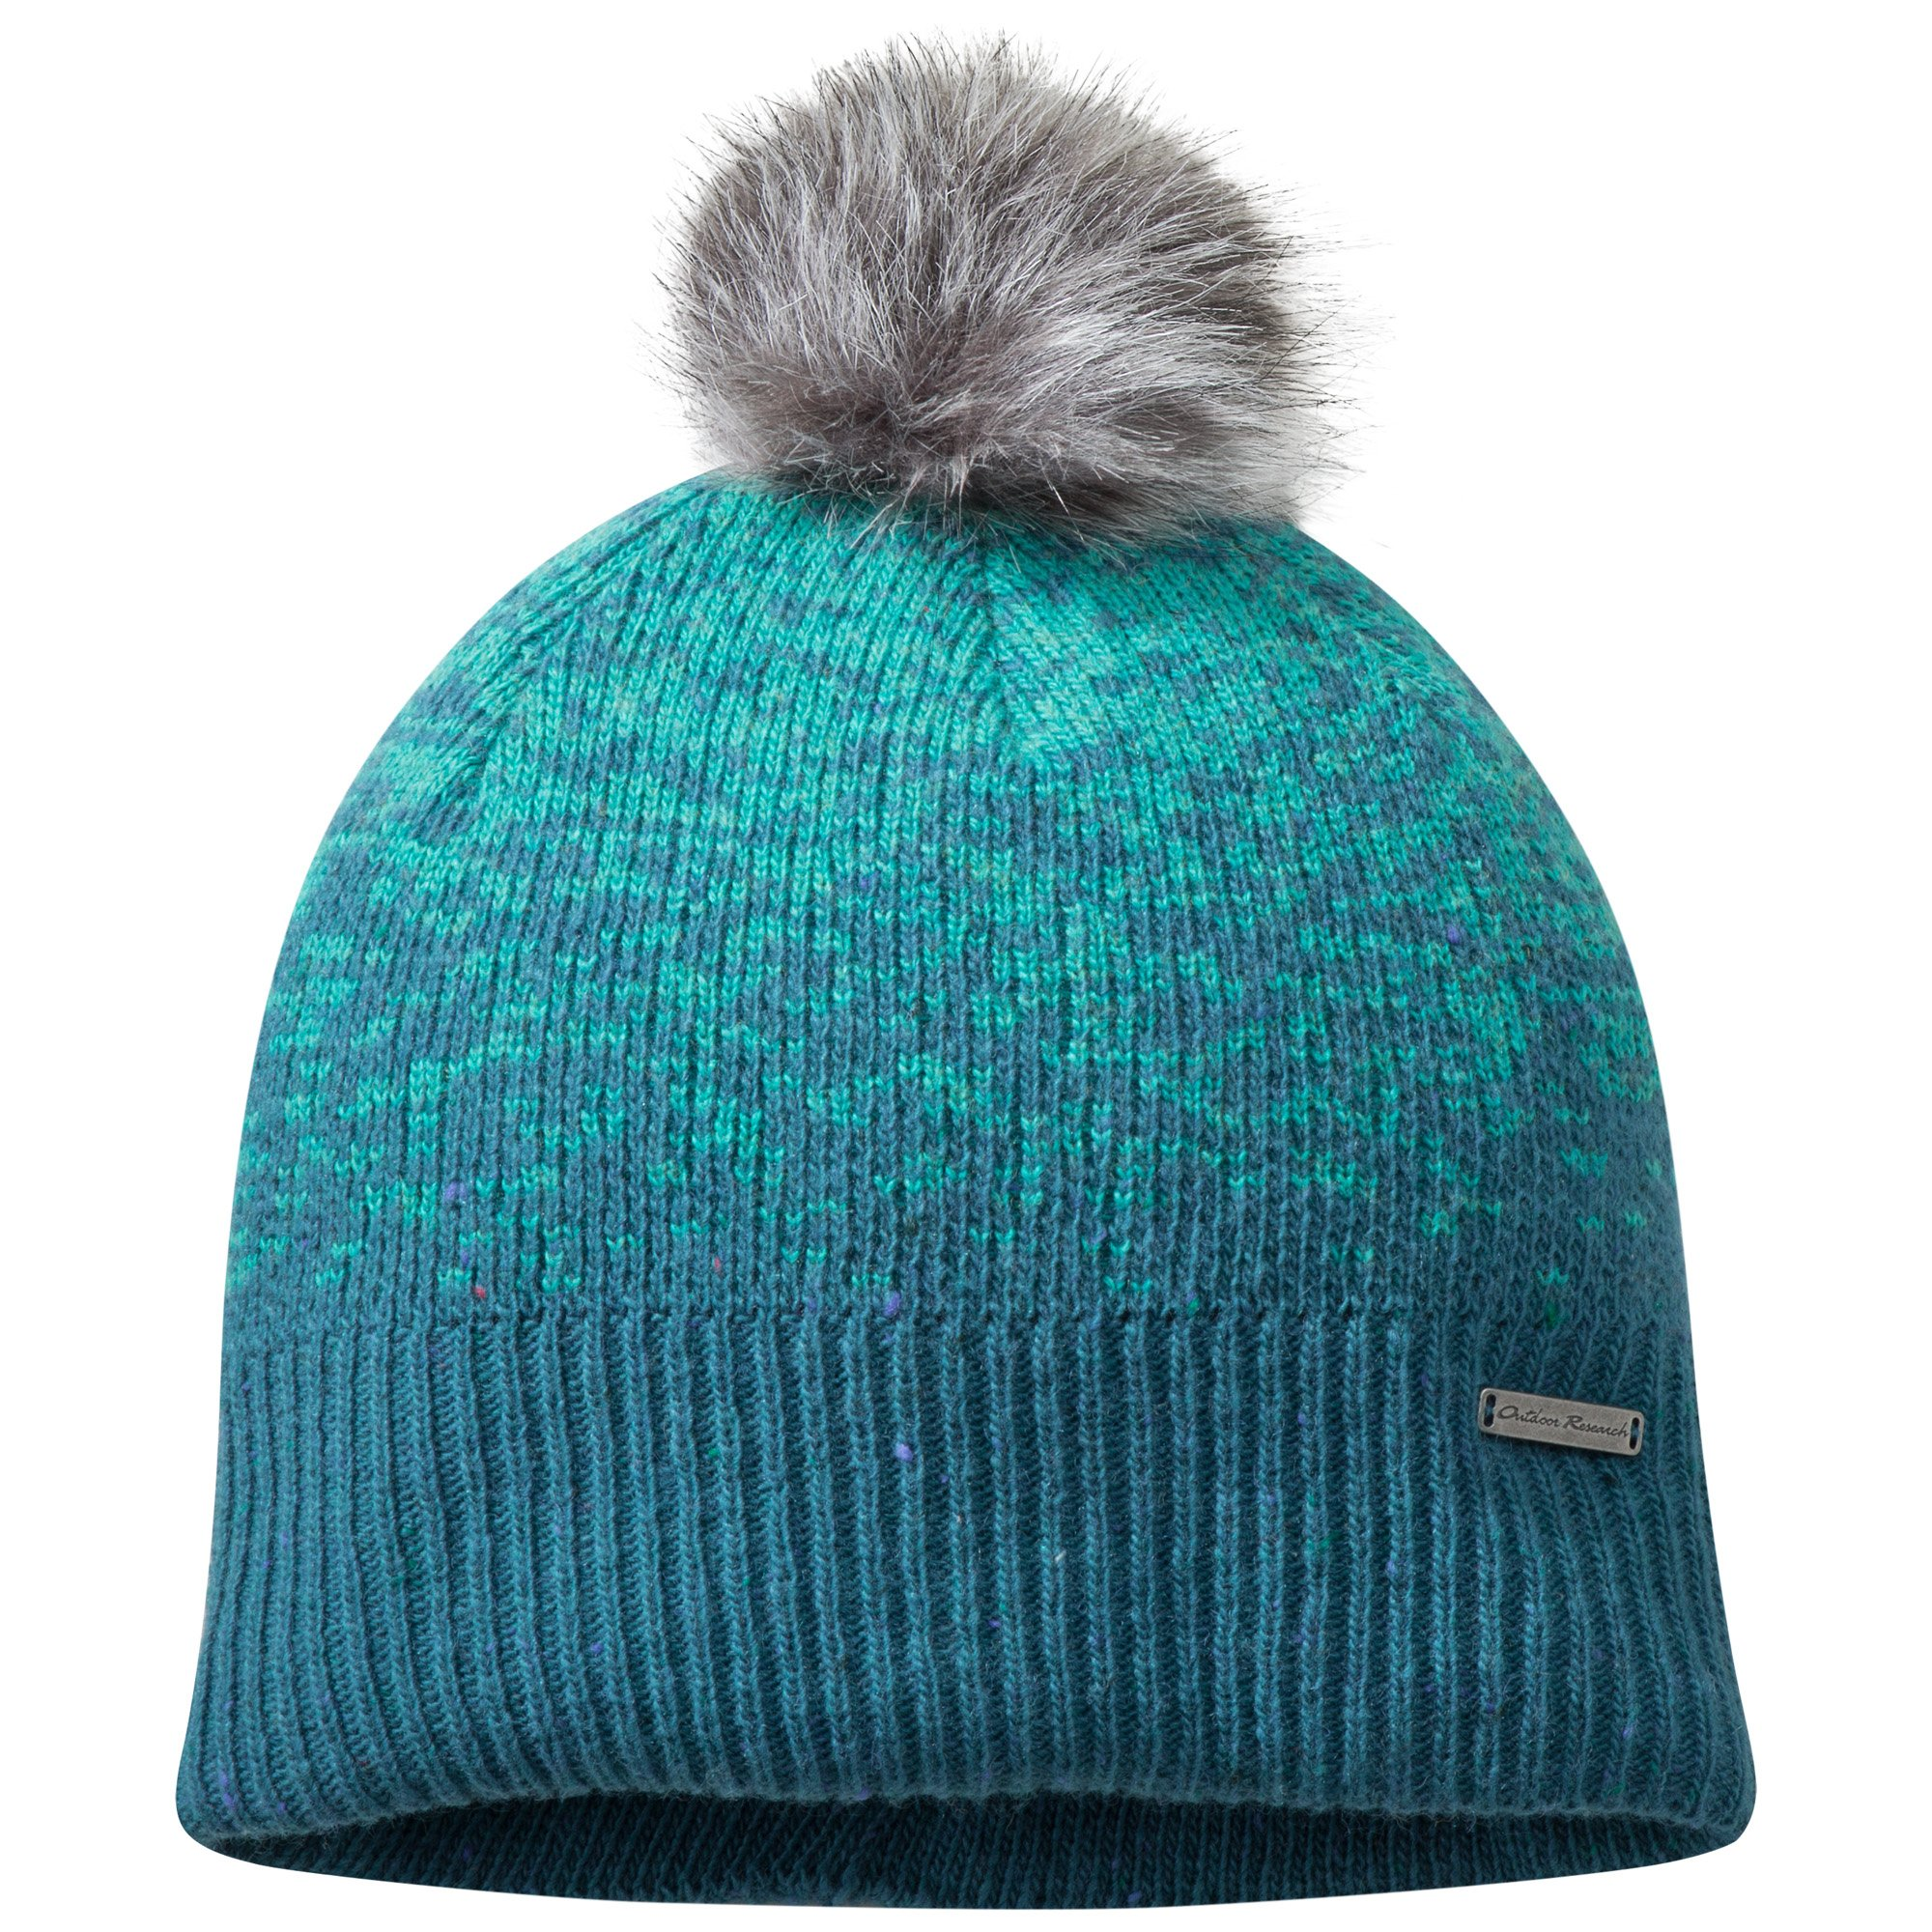 Outdoor Research 254031-1299 Women's Effie Beanie, One Size, Seaglass